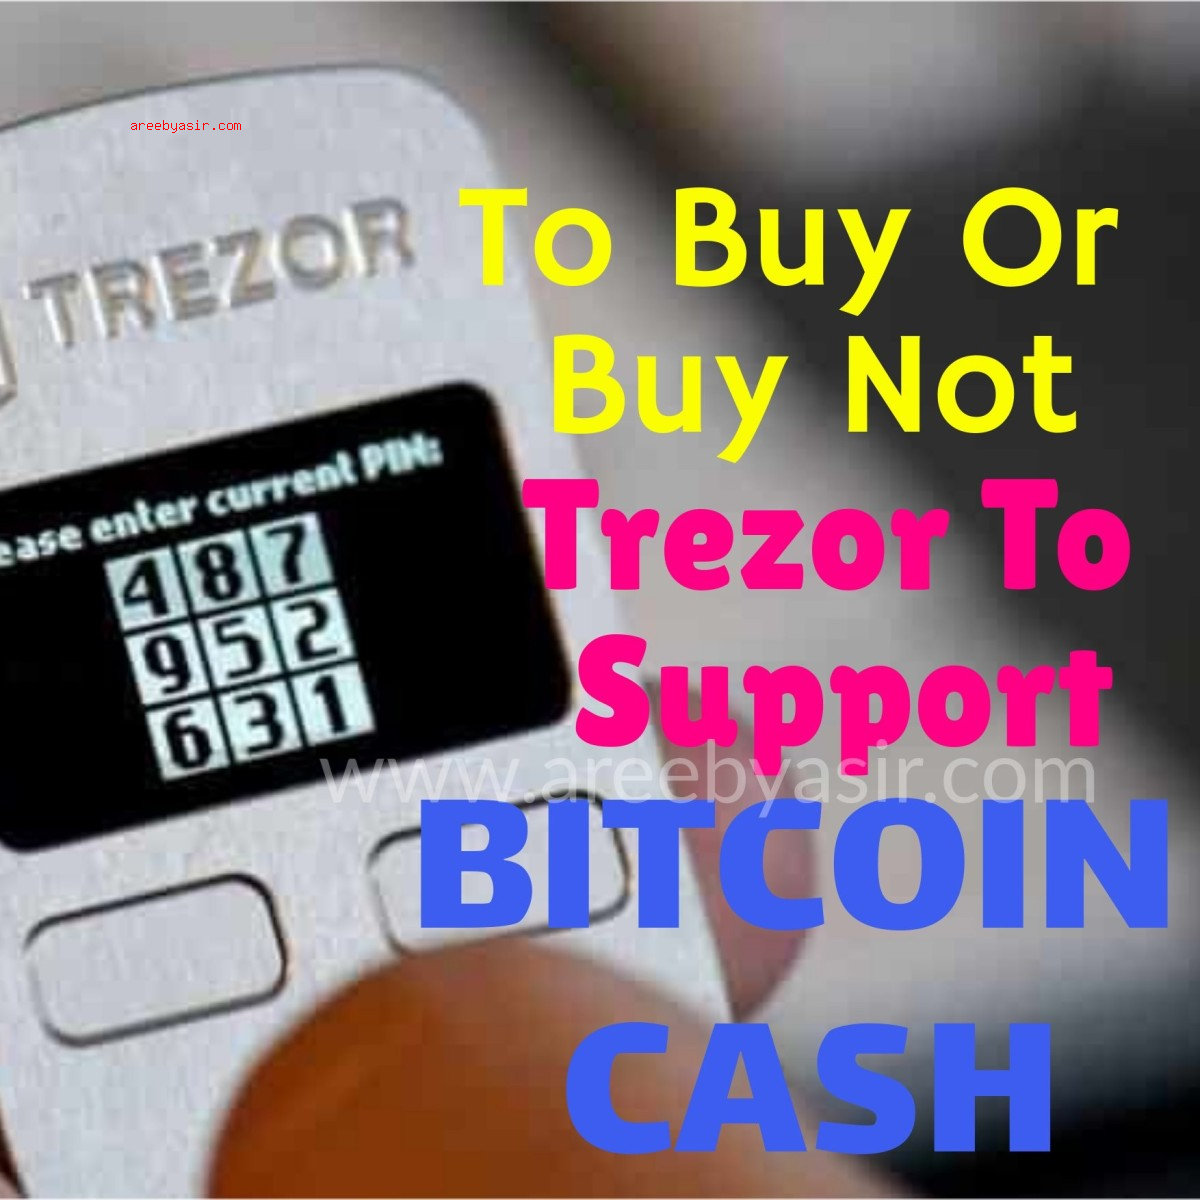 Trezor Hardware Wallet to Support Bitcoin Cash